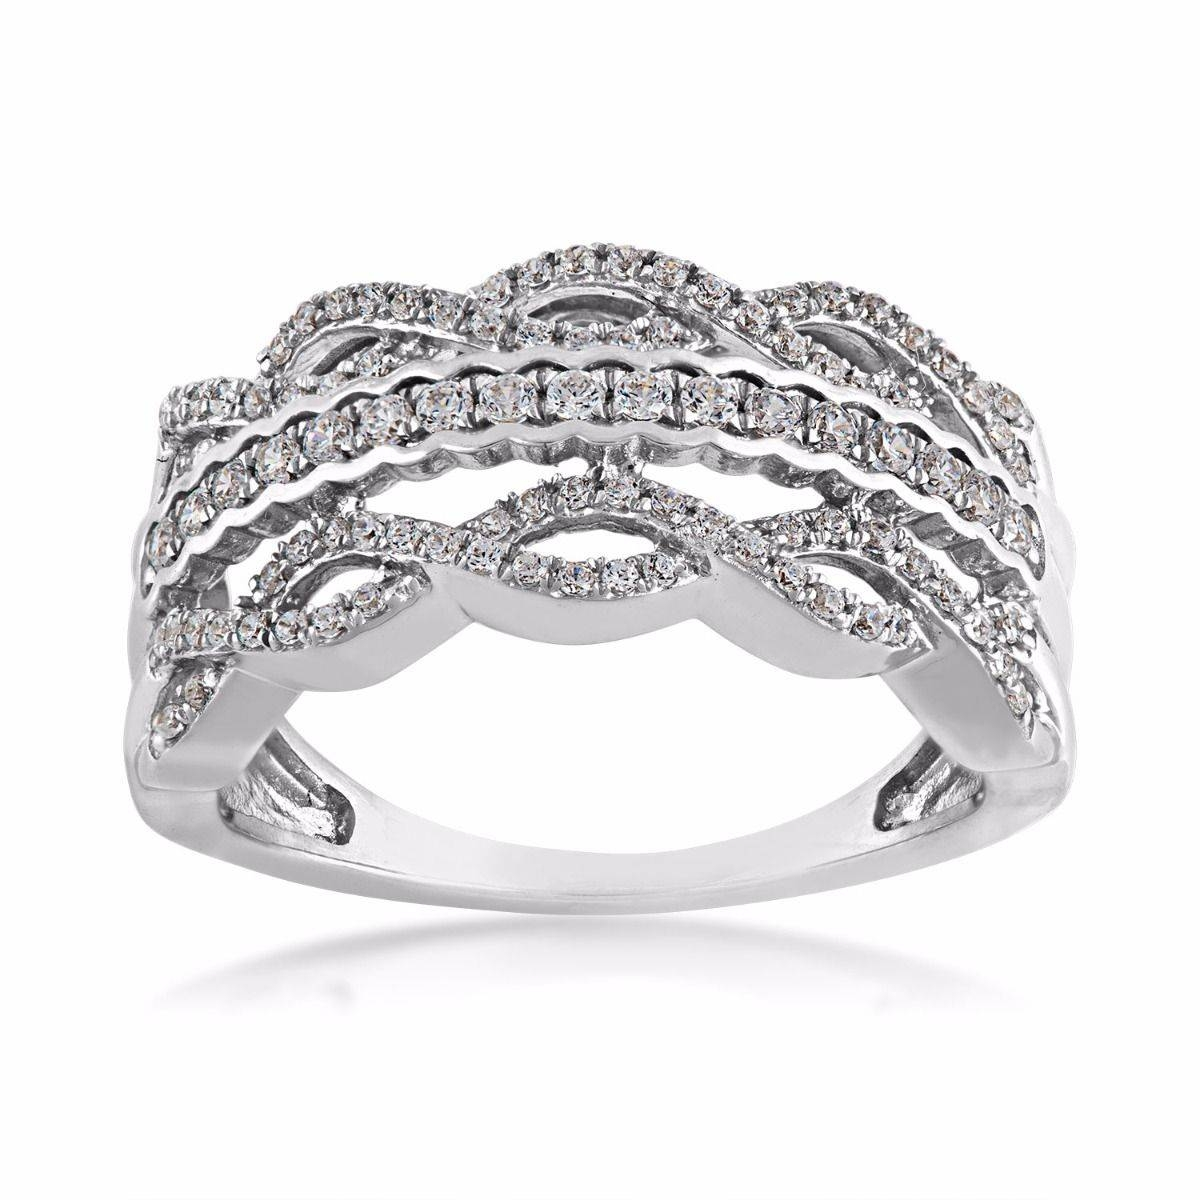 Ladies Diamond Anniversary Ring | Riddle's Jewelry In Most Popular Gold Diamond Anniversary Rings (View 18 of 25)